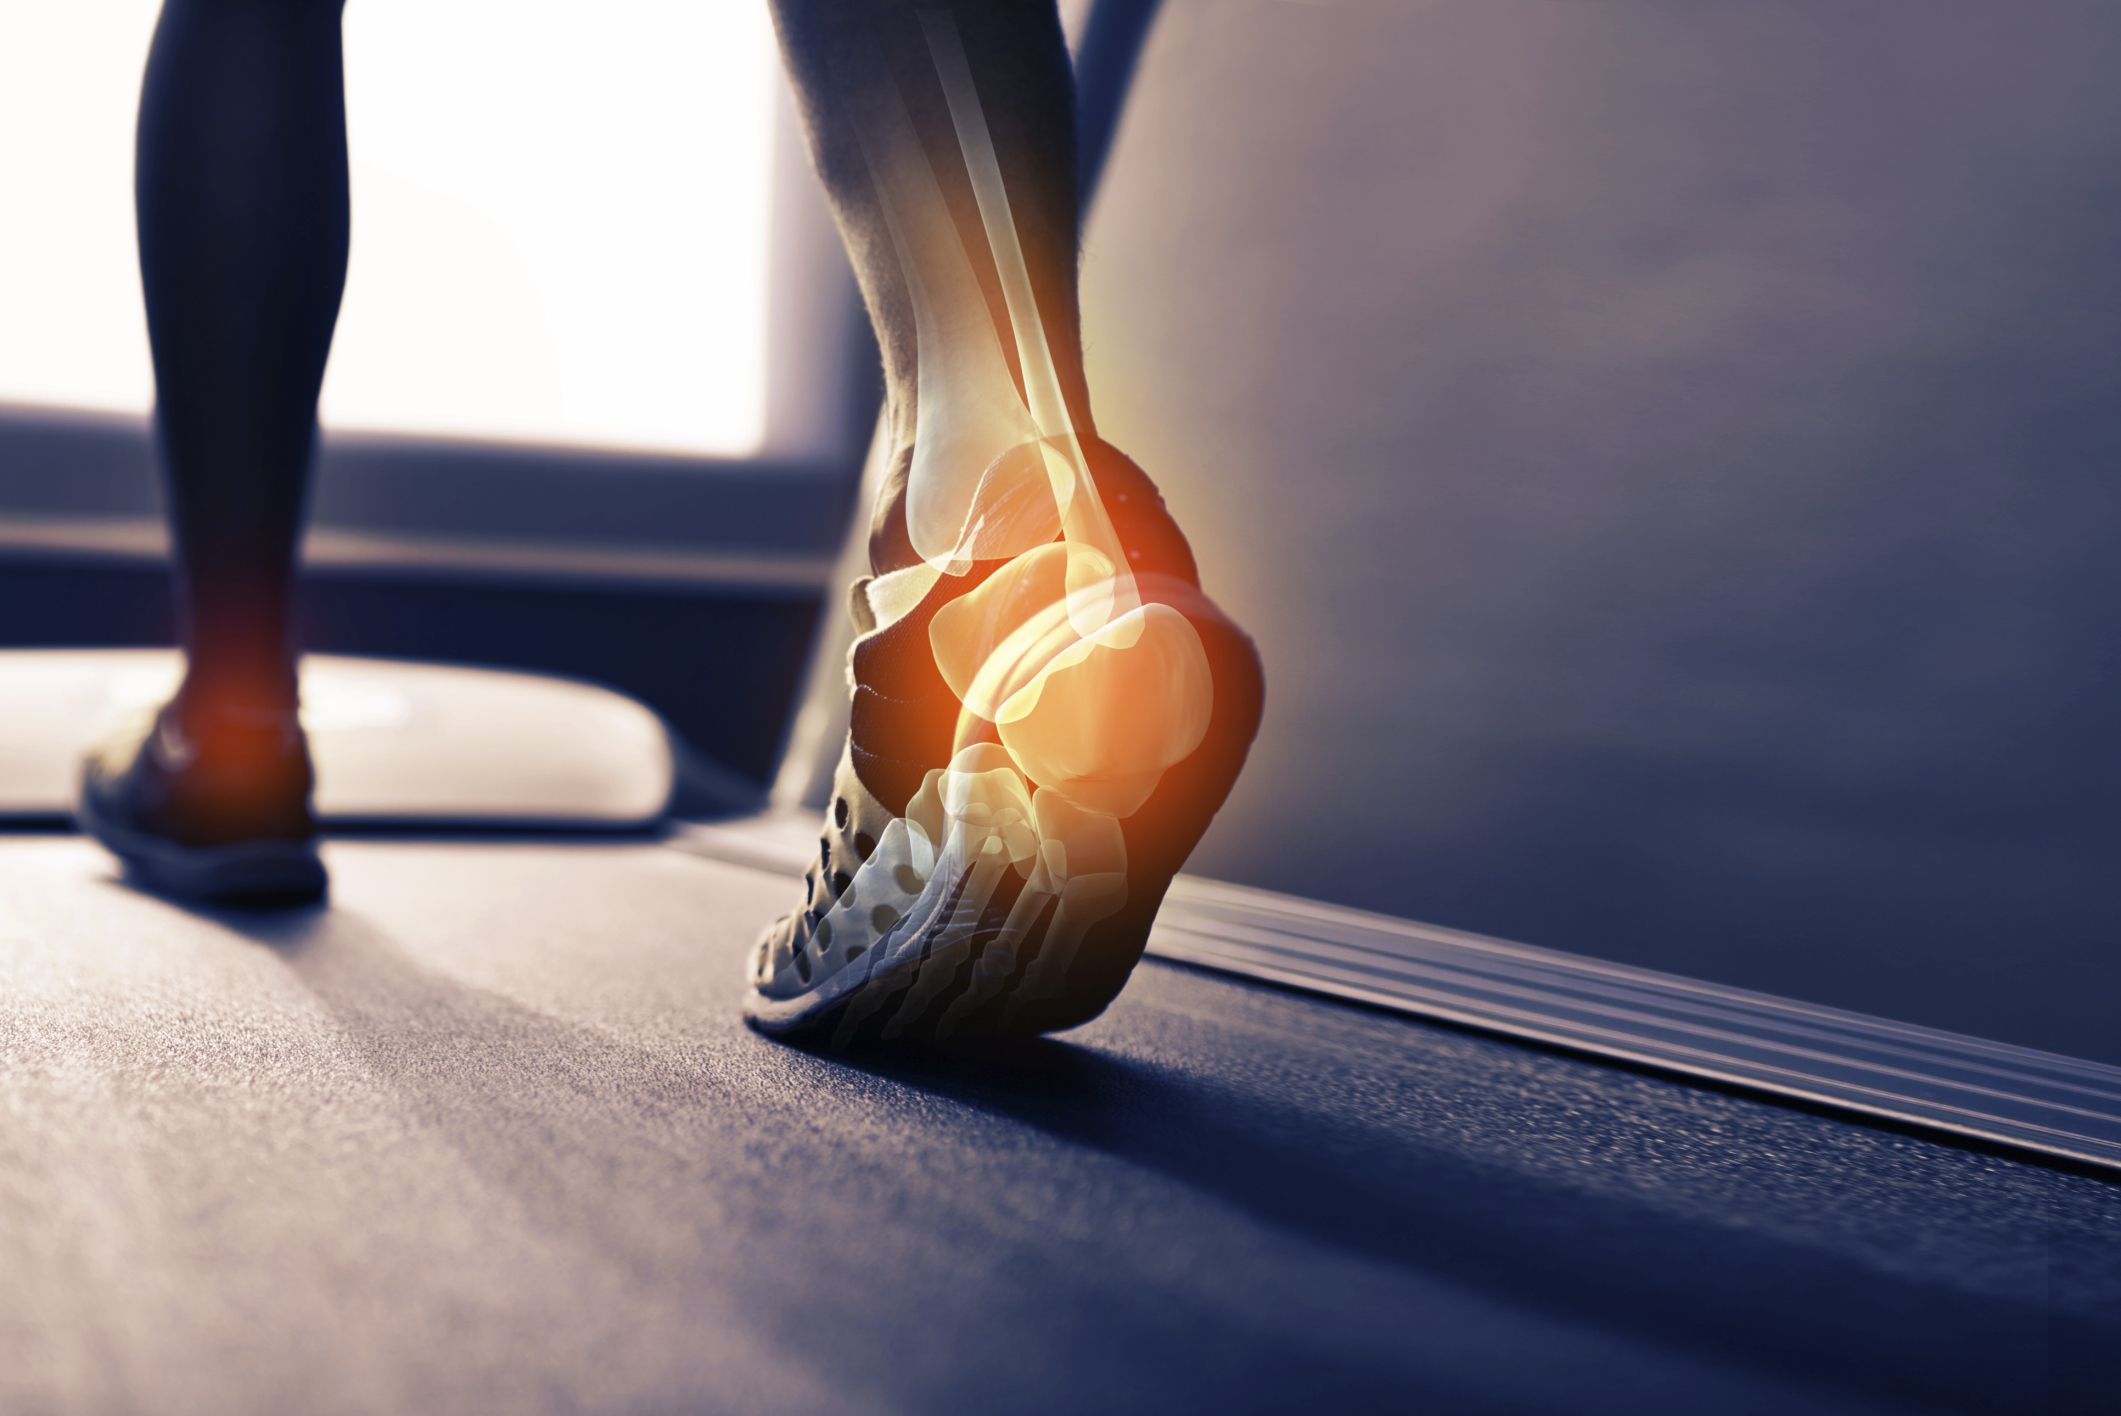 Stretching Exercises for Plantar Fasciitis